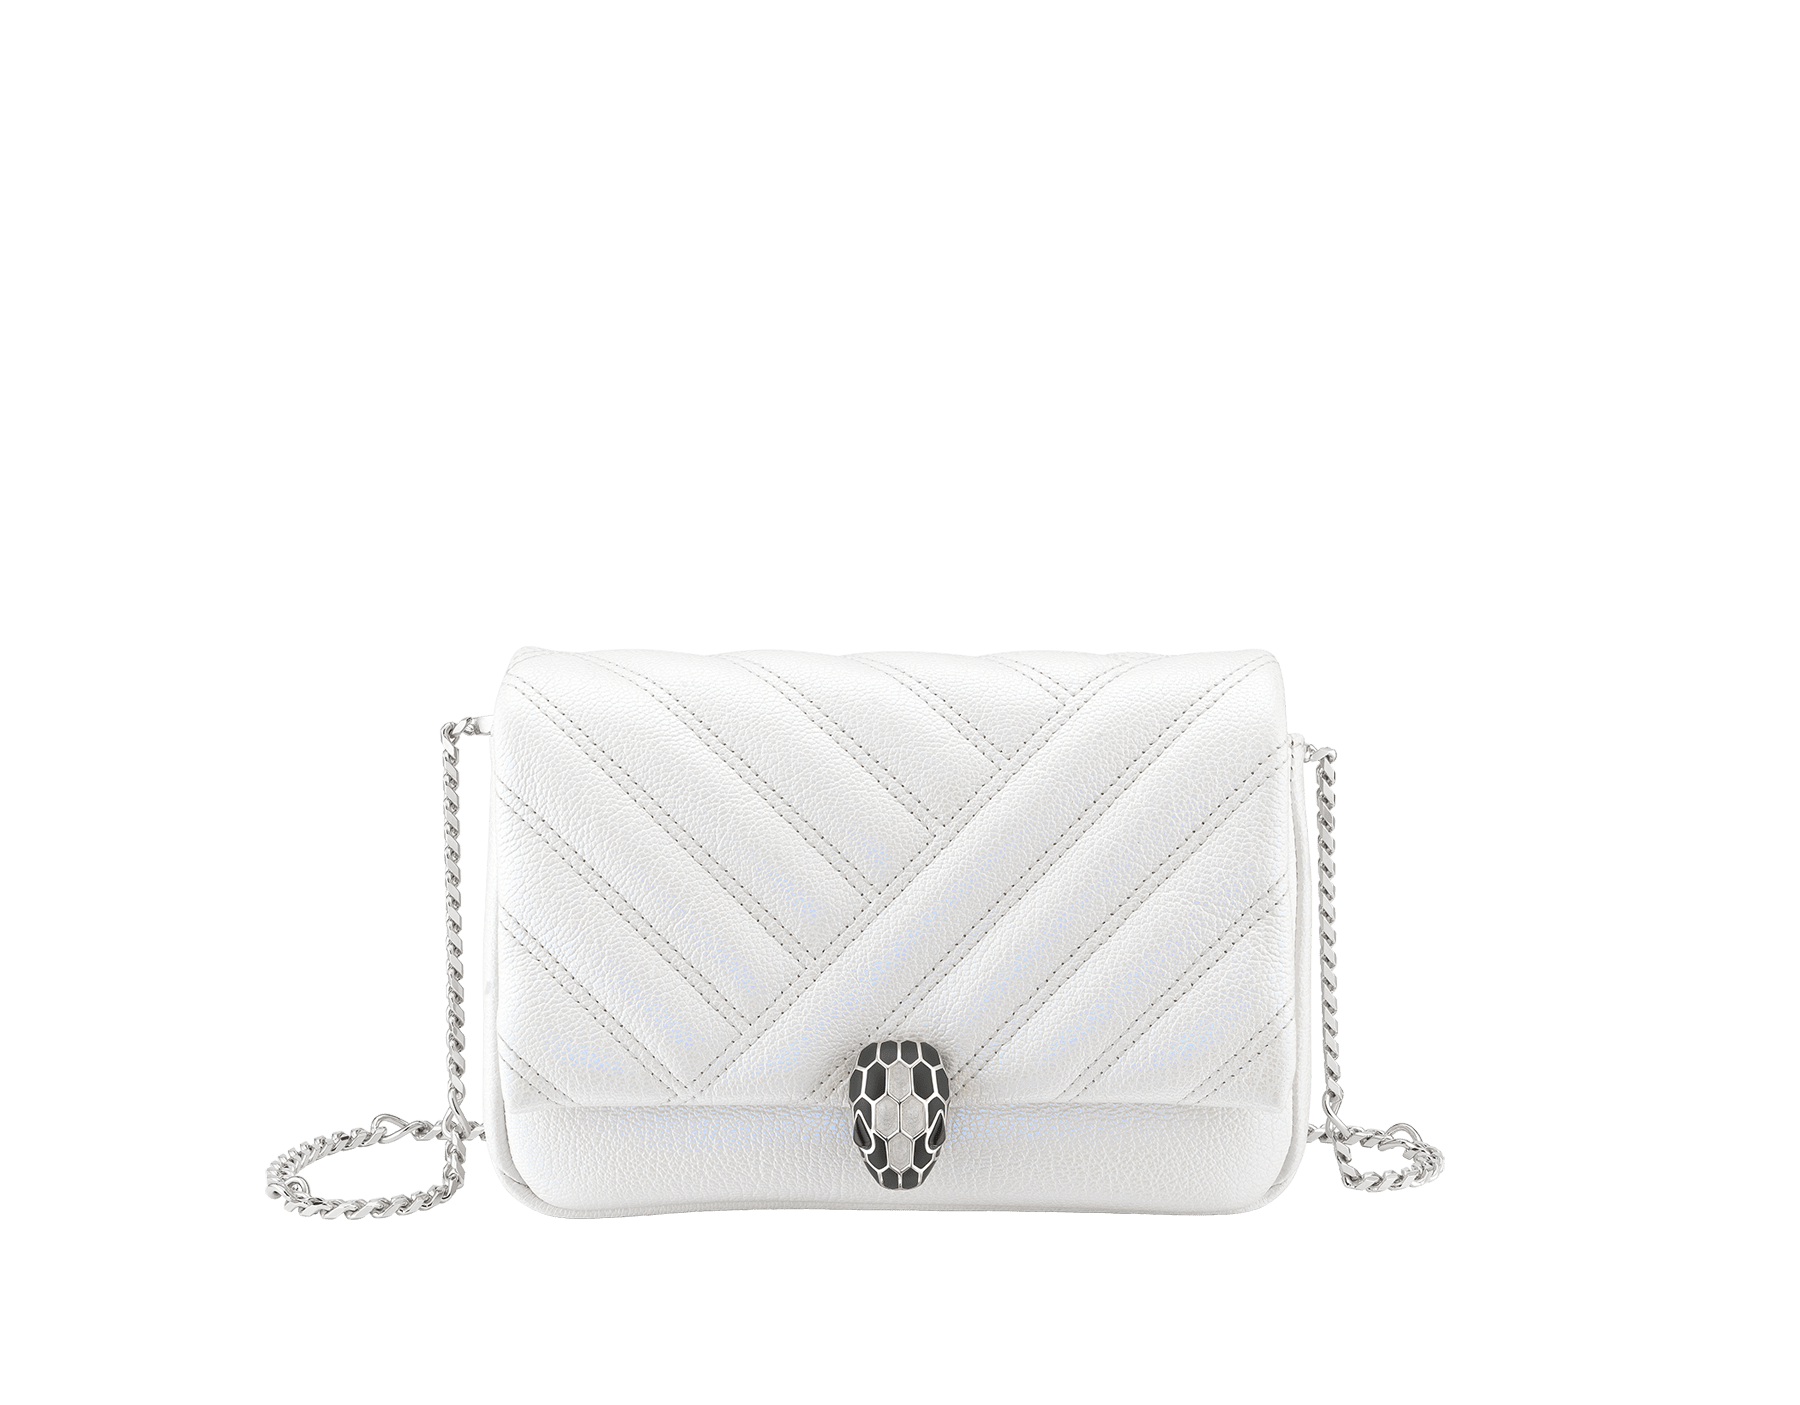 """Serpenti Cabochon"" micro bag in soft matelassé white agate goatskin with a pearled and iridescent effect, with a graphic motif. Brass palladium plated tempting snakehead closure in matte black and shiny white agate enamel and black onyx eyes. 1023-PSL image 1"